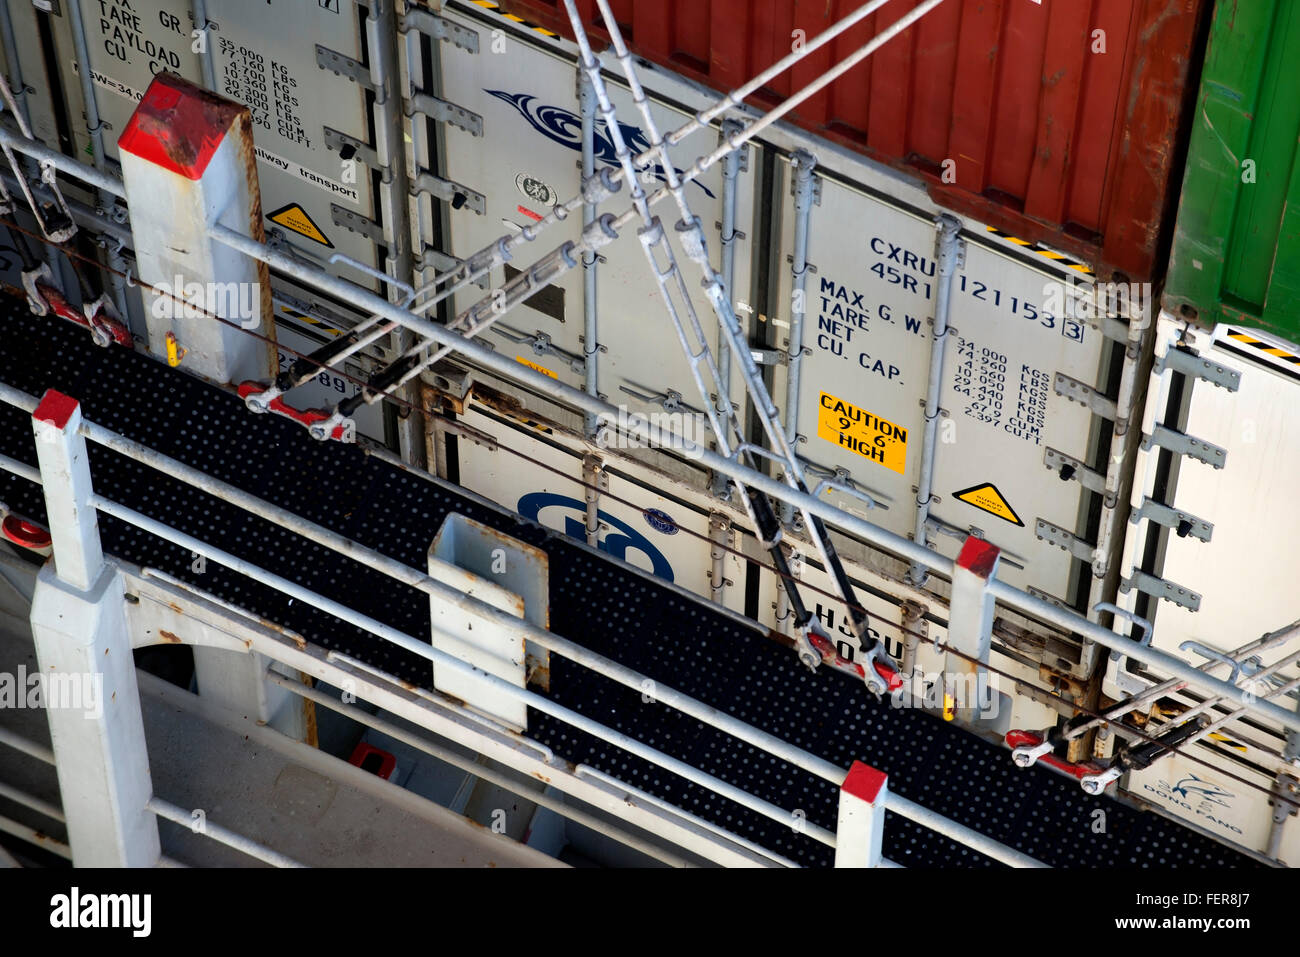 Container shipments. Rods lashed to the vessel secure containers on board the ship - Stock Image